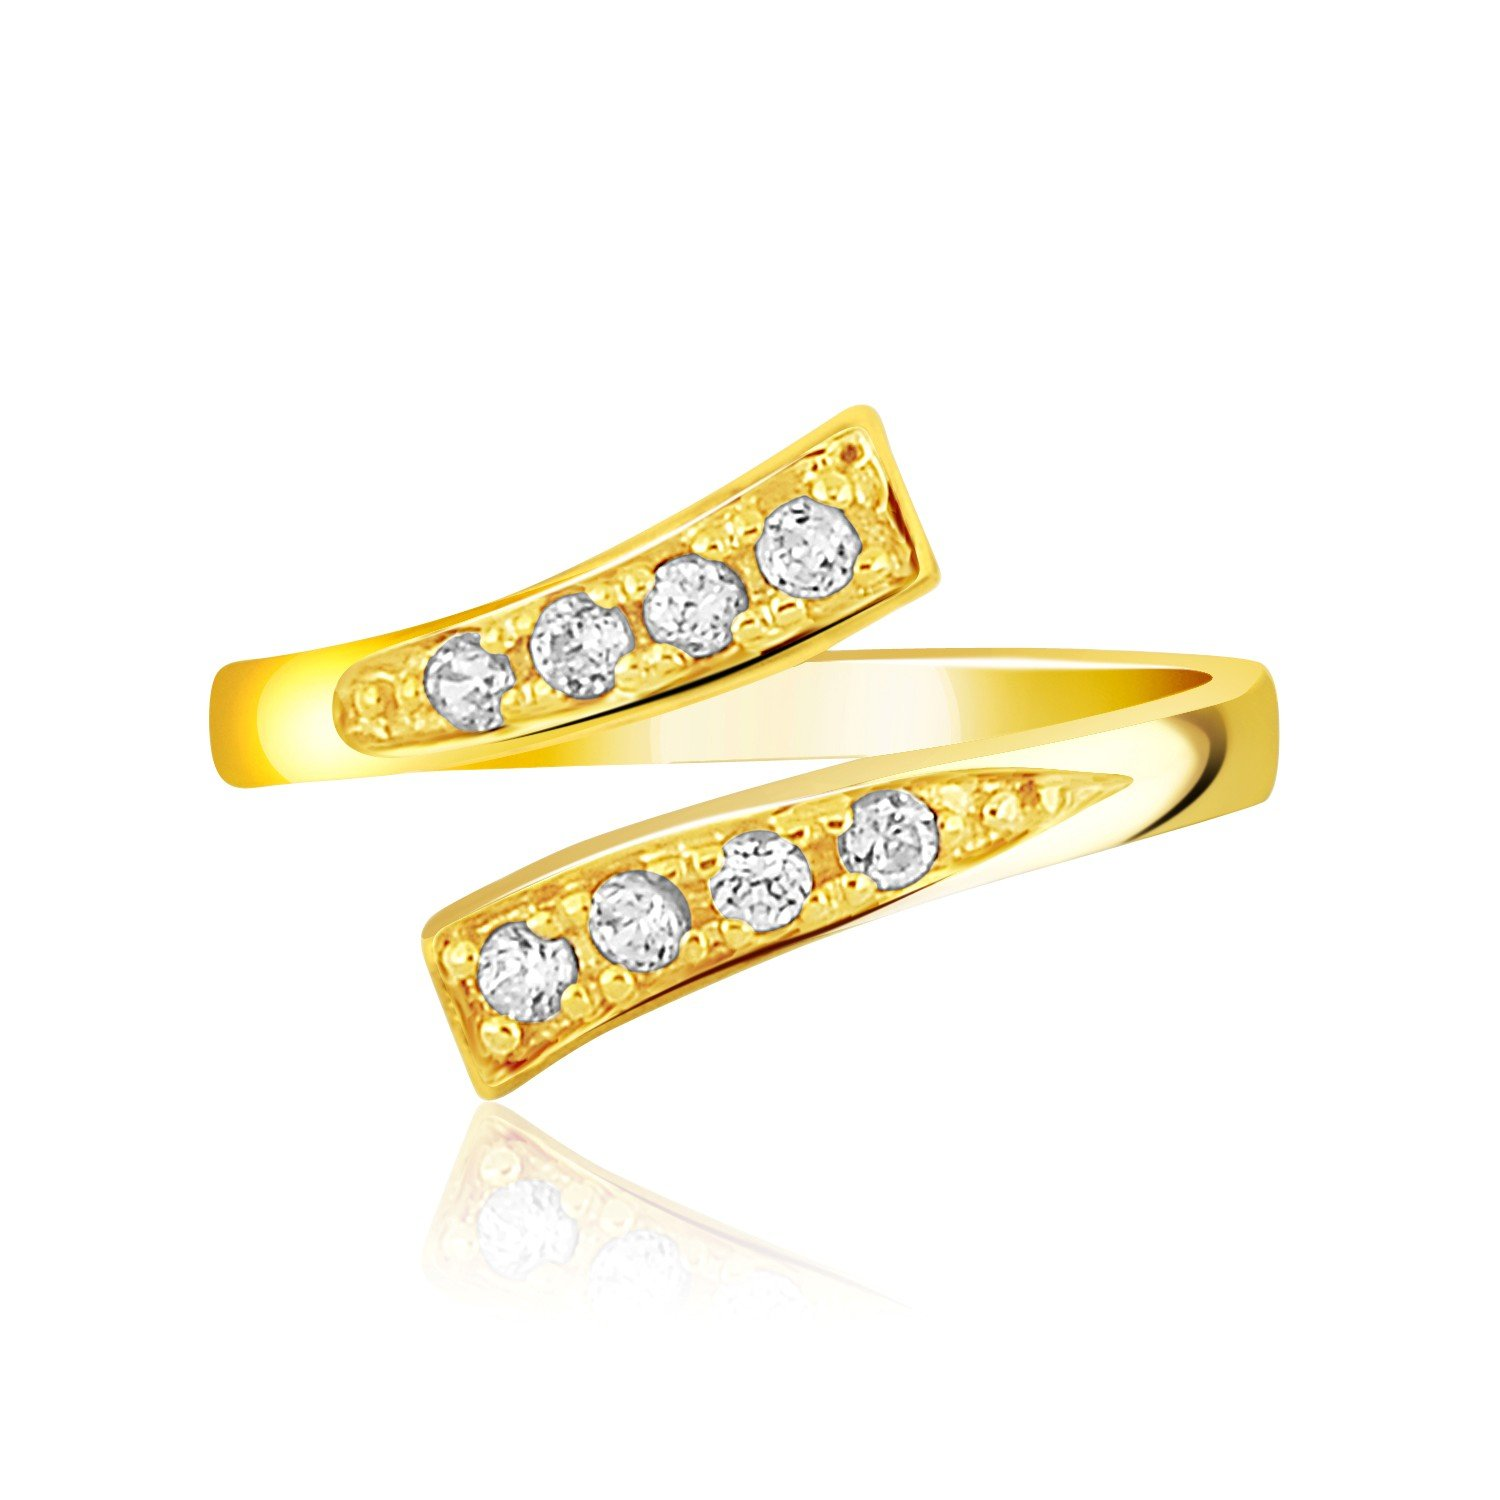 Bunnyberry Gifts 14K Yellow Gold Contemporary Cubic Zirconia Accented Toe Ring